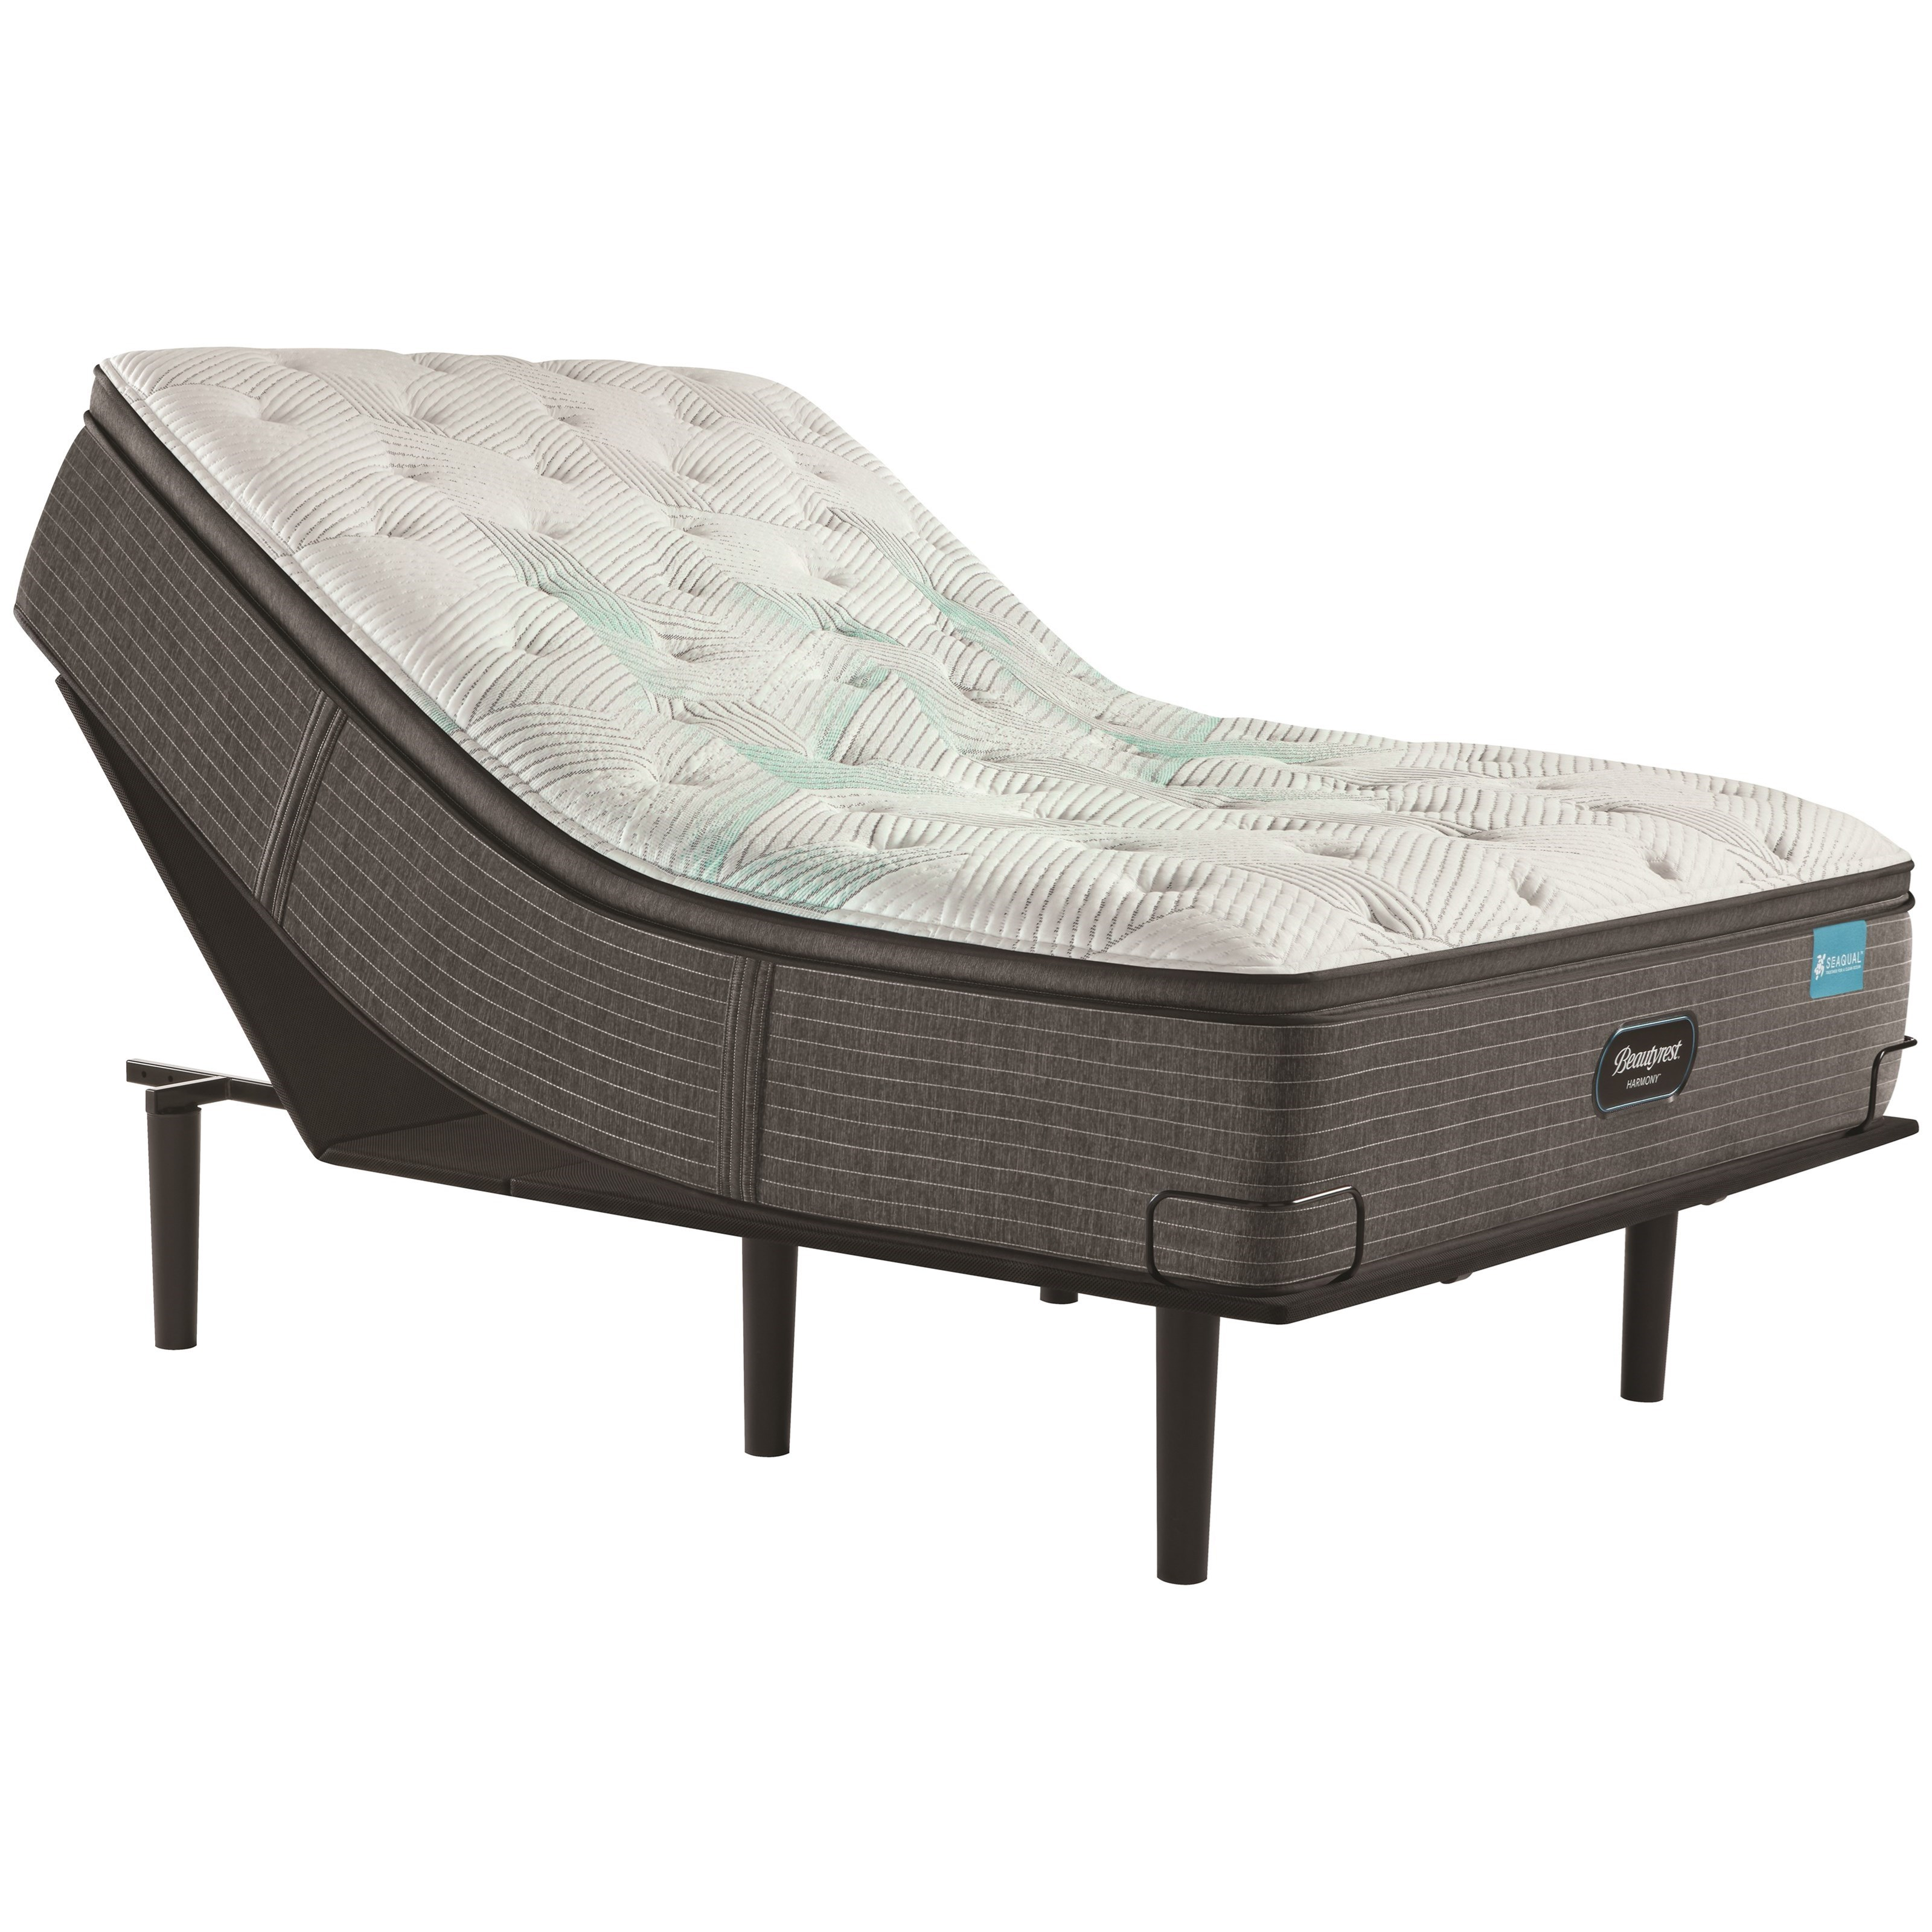 "Cayman Series Medium PT Cal King 15 1/2"" Medium Pillow Top Adj Set by Beautyrest at Becker Furniture"